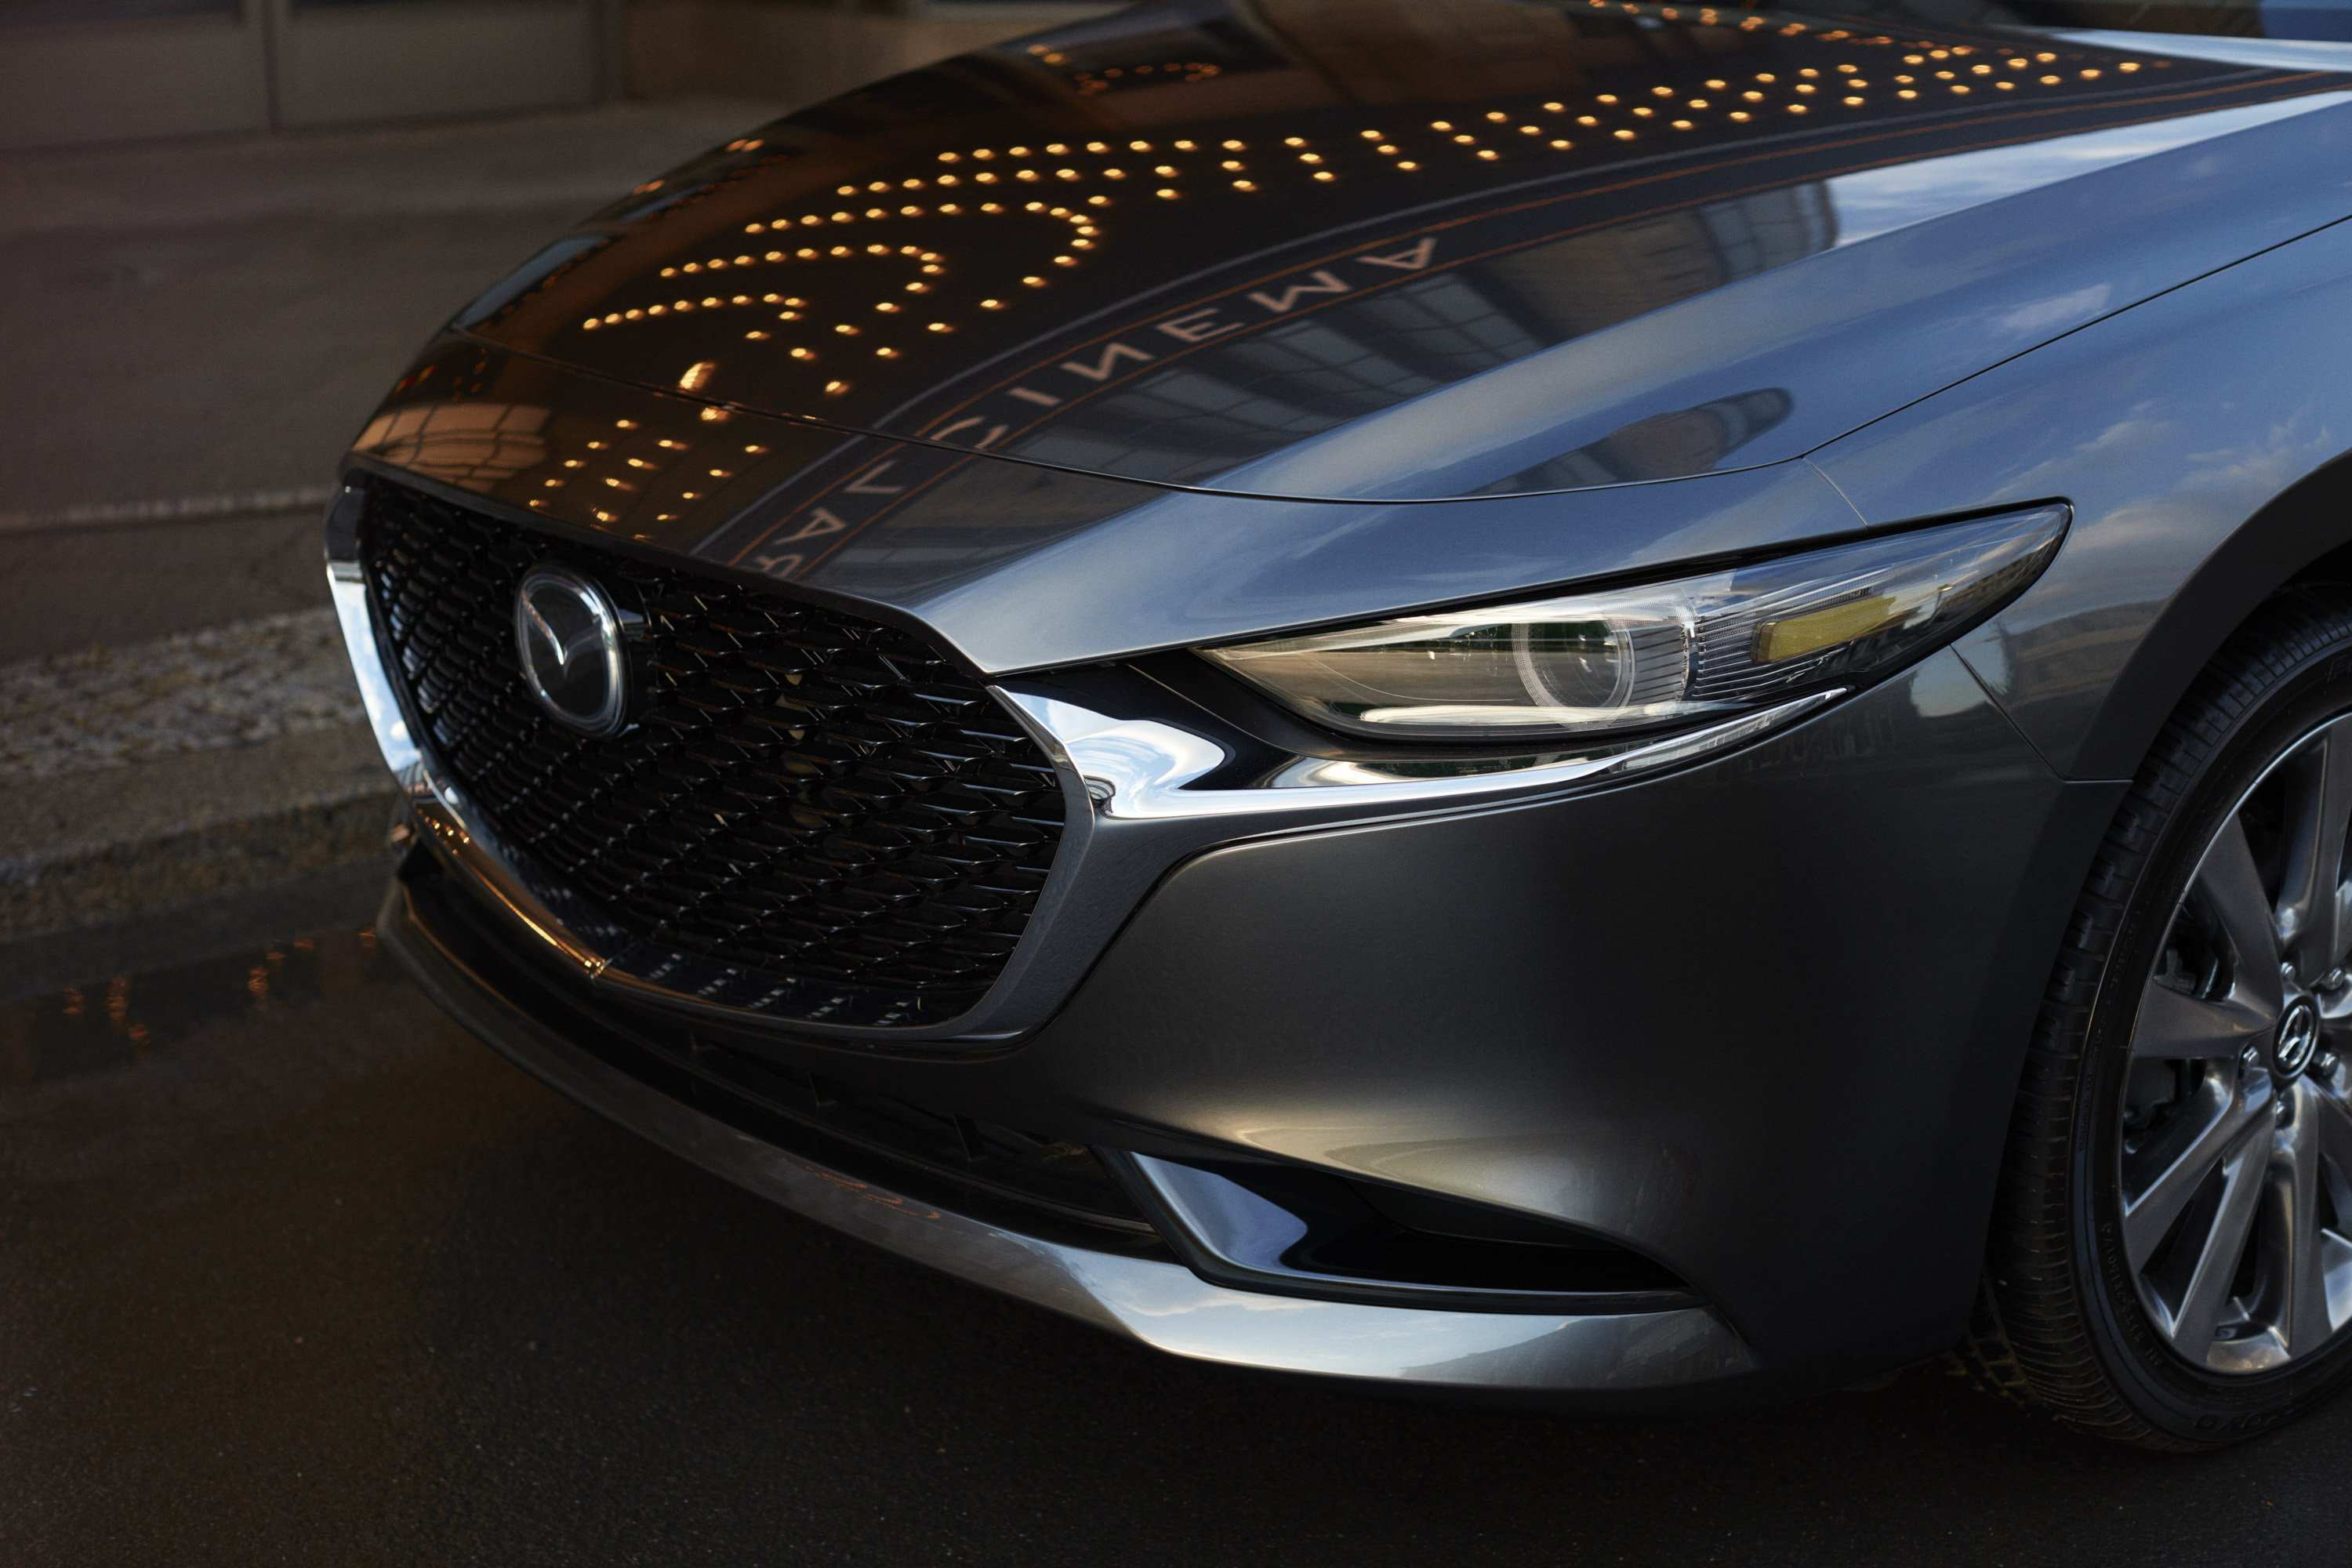 33 Best Review New Mazda 6 2019 Uk Overview Picture for New Mazda 6 2019 Uk Overview